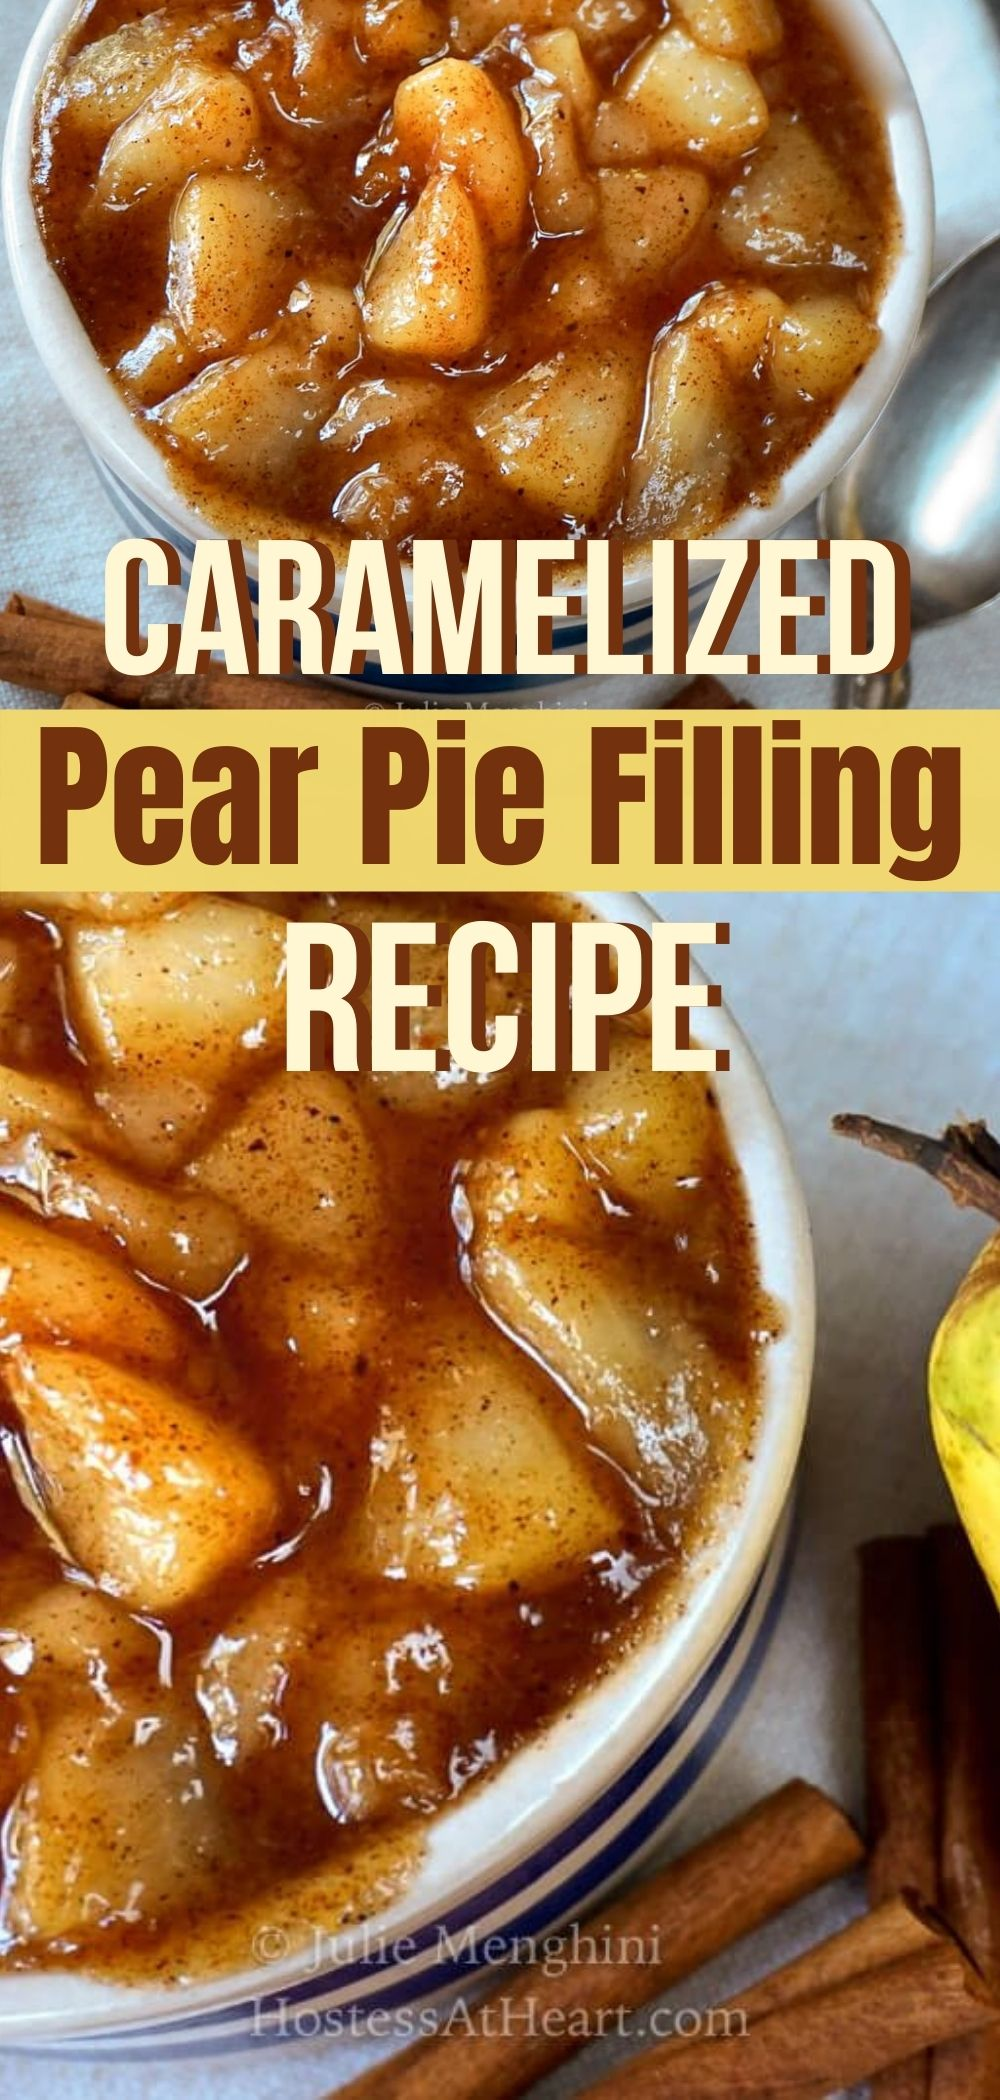 Two photos for Pinterest of dishes of pear pie filling.